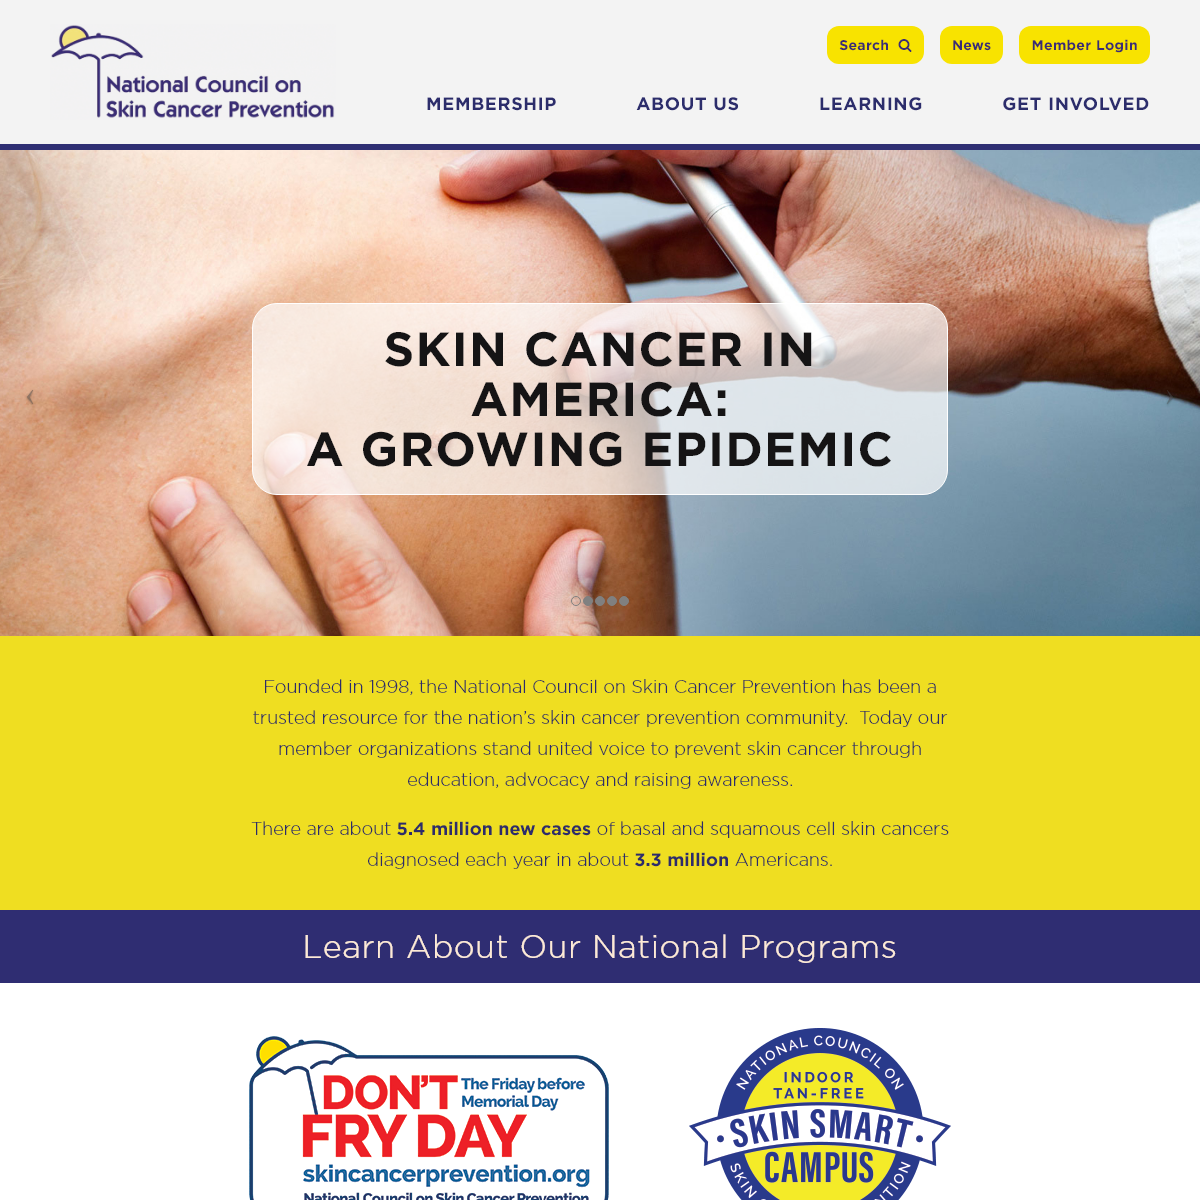 National Council on Skin Cancer Prevention